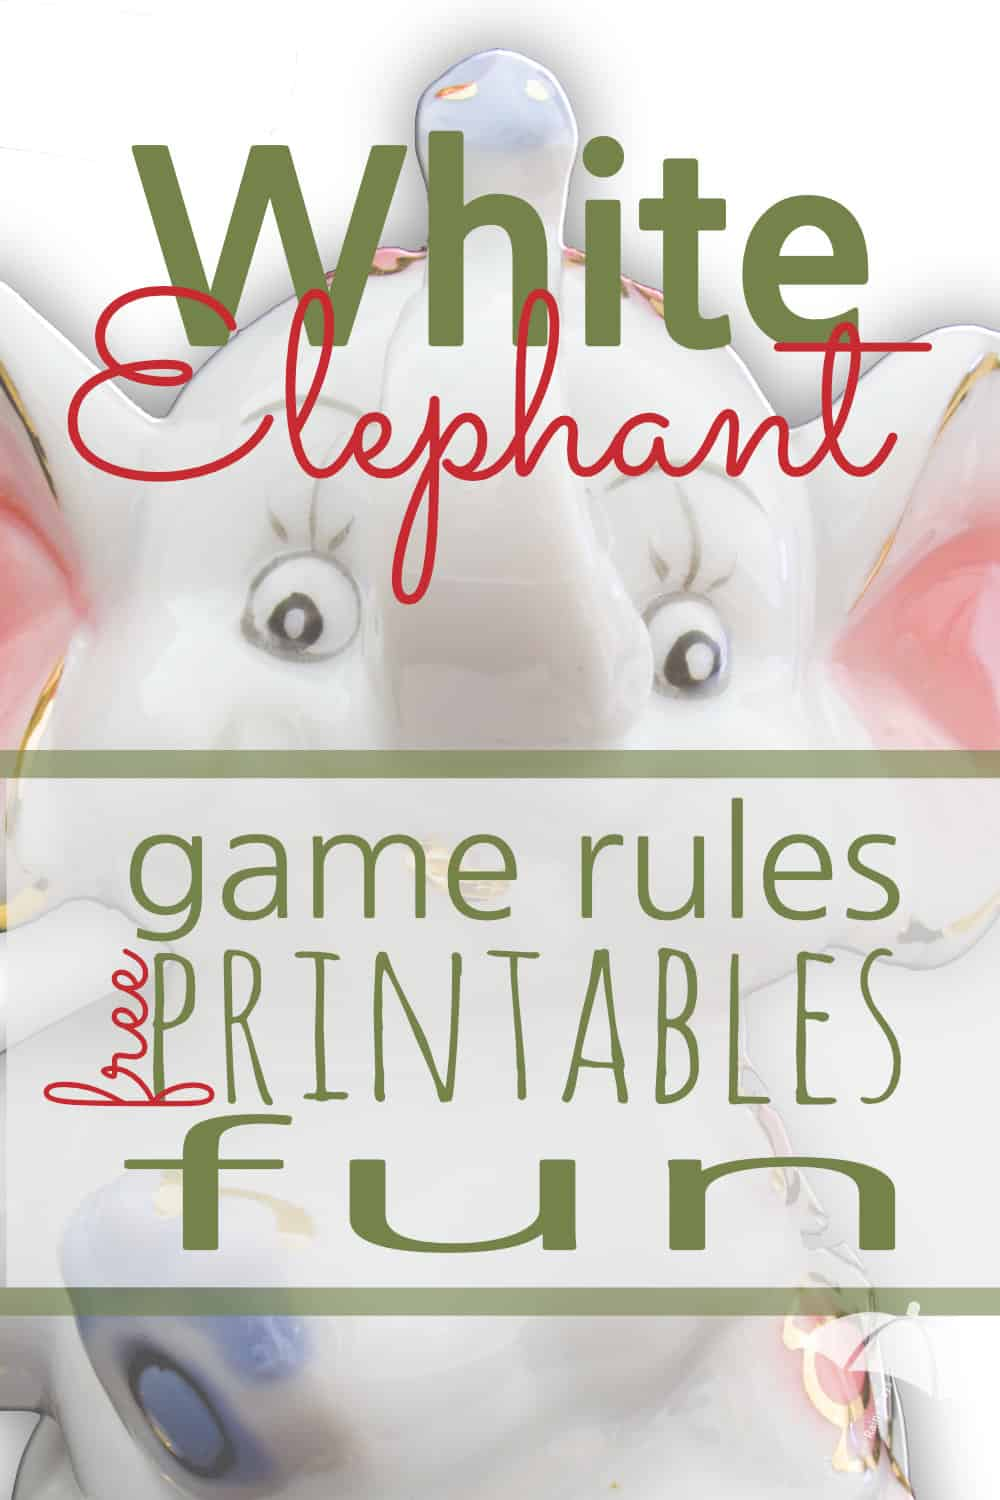 White elephant gift exchange rules and printables sunshine and a white elephant gift exchange is budget friendly and fun these white elephant gift exchange negle